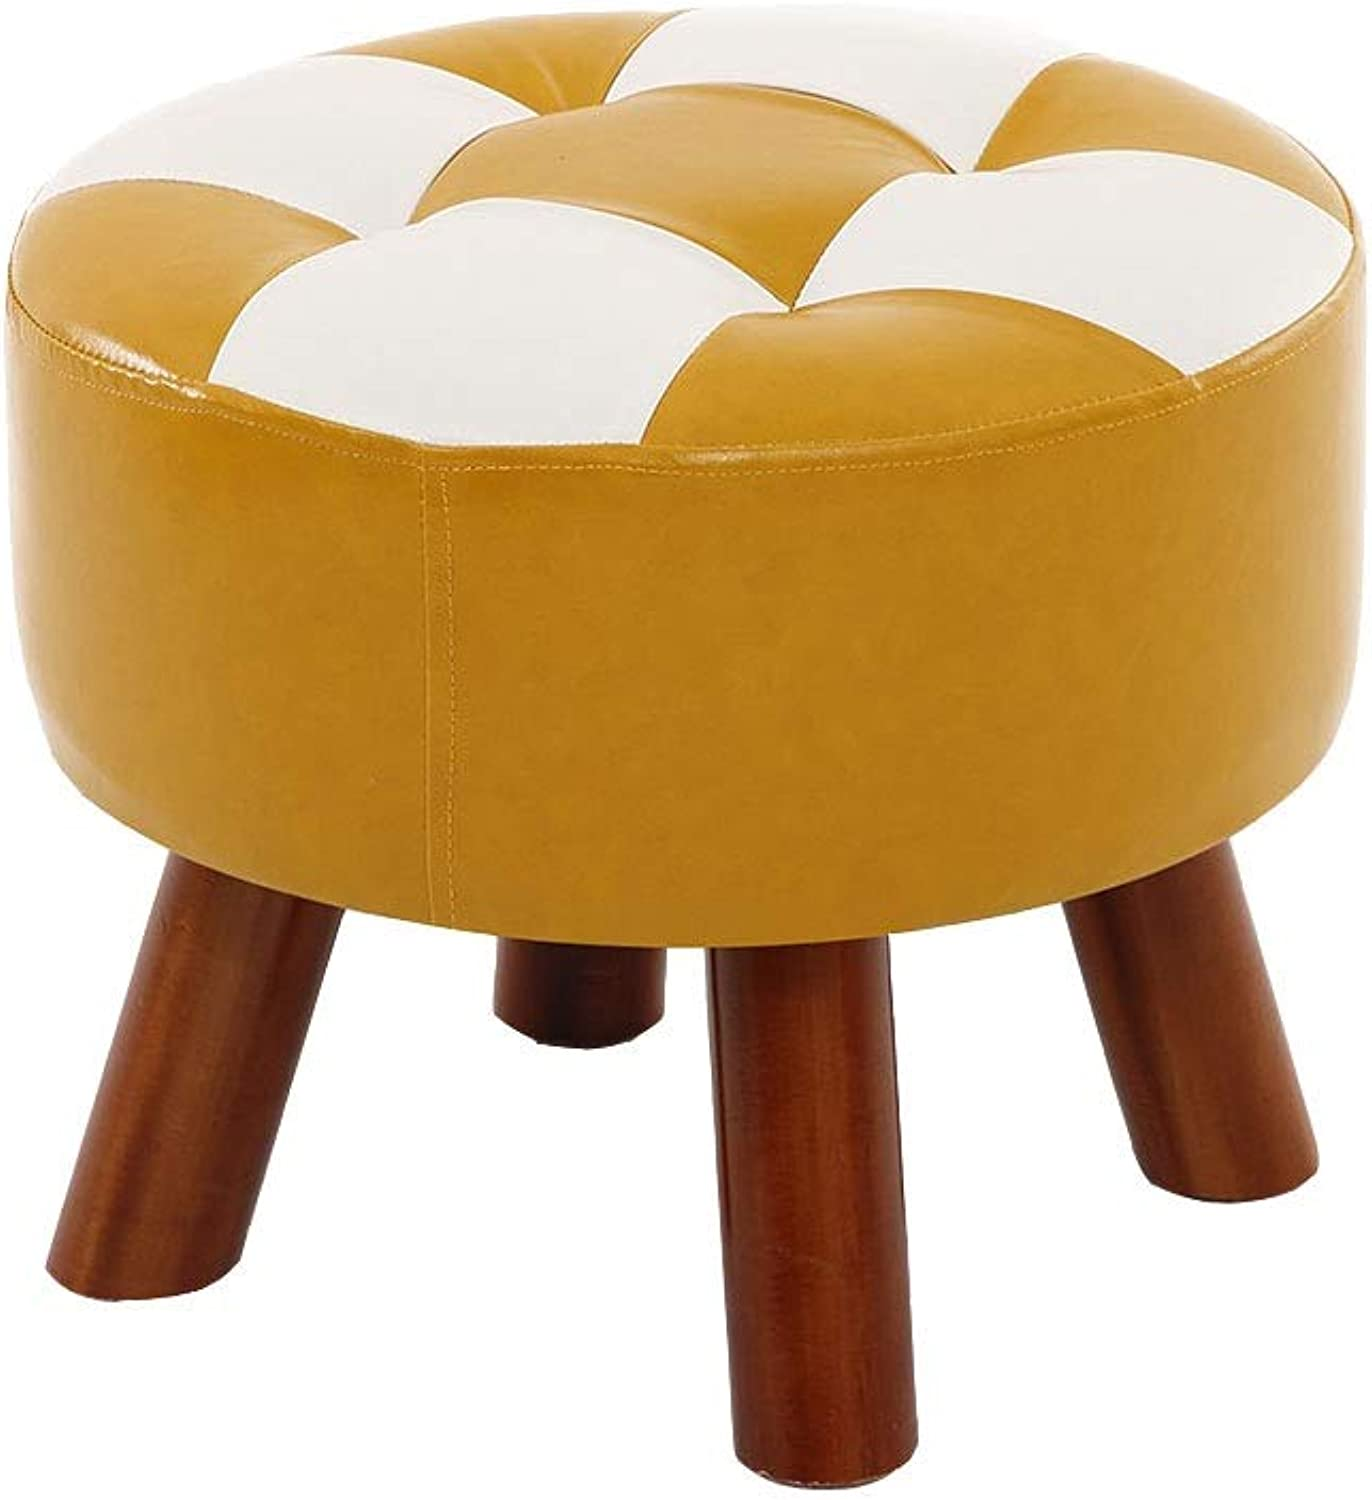 Foot Stools Pouffe Footstool PU Upholstered Footrest Change shoes Bench Chair Round Small Wooden Stool for Living Room (color   Yellow)